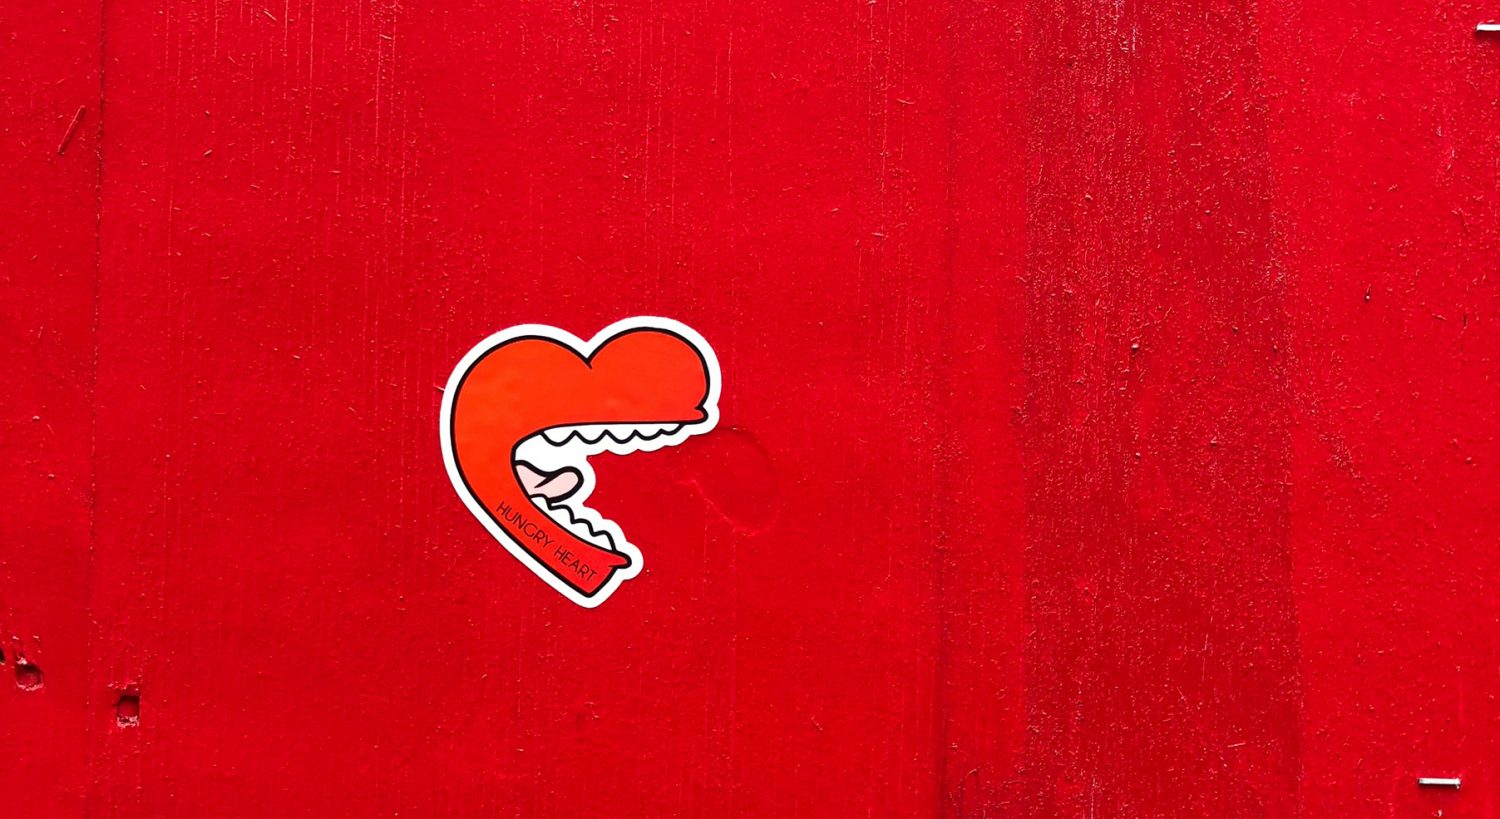 mouth on a red background